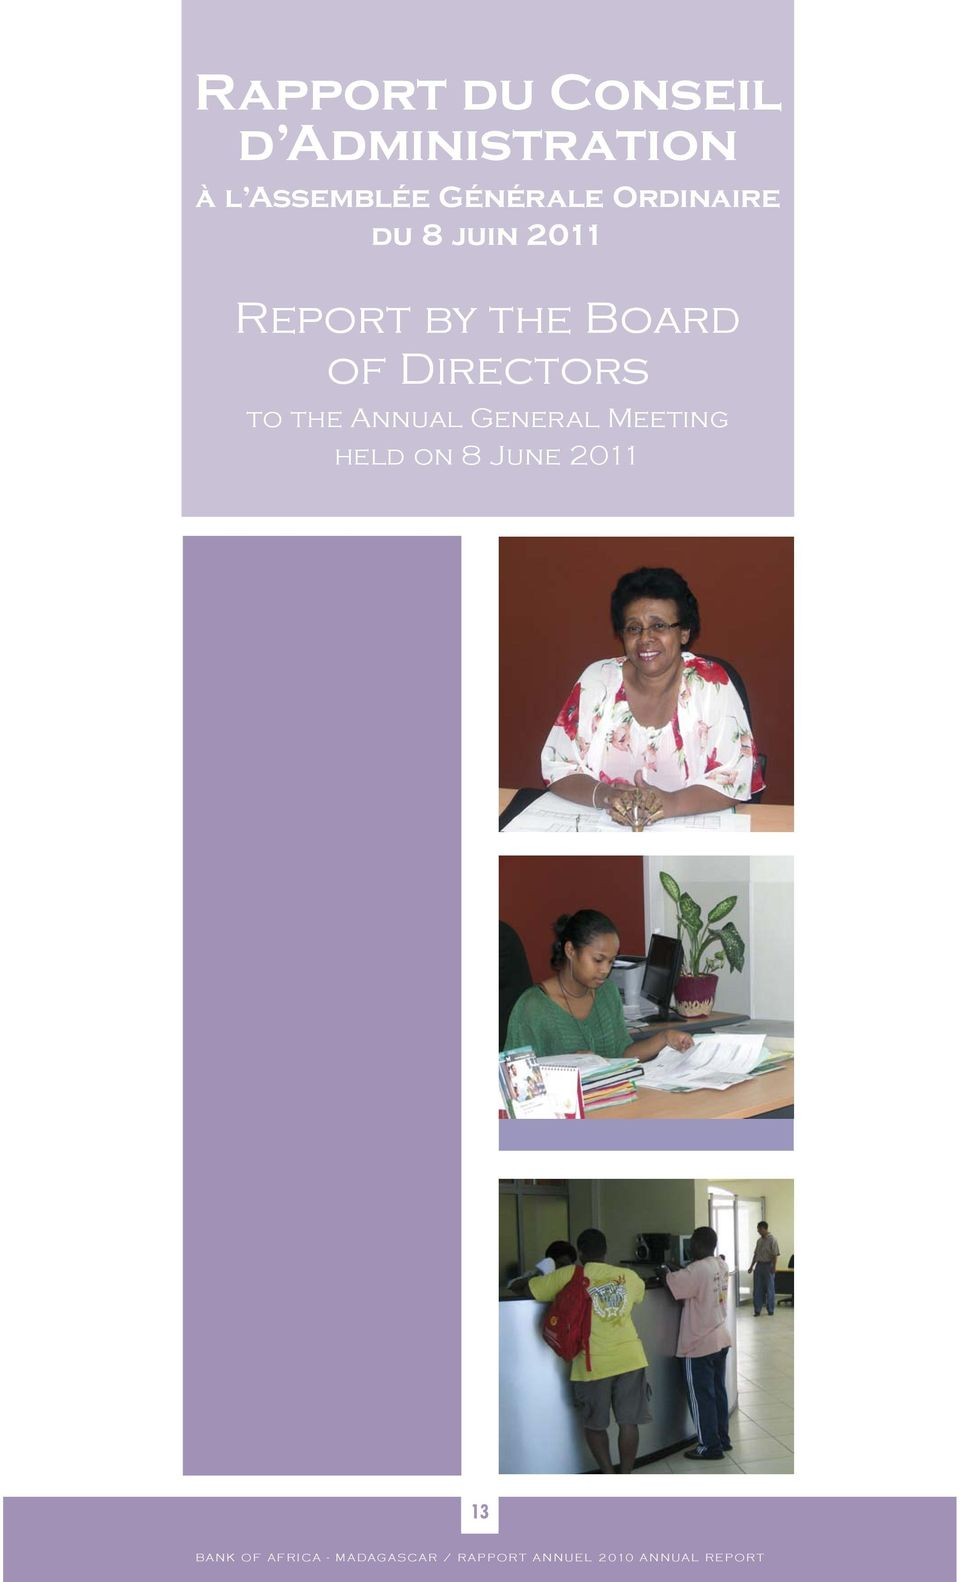 2011 Report by the Board of Directors to